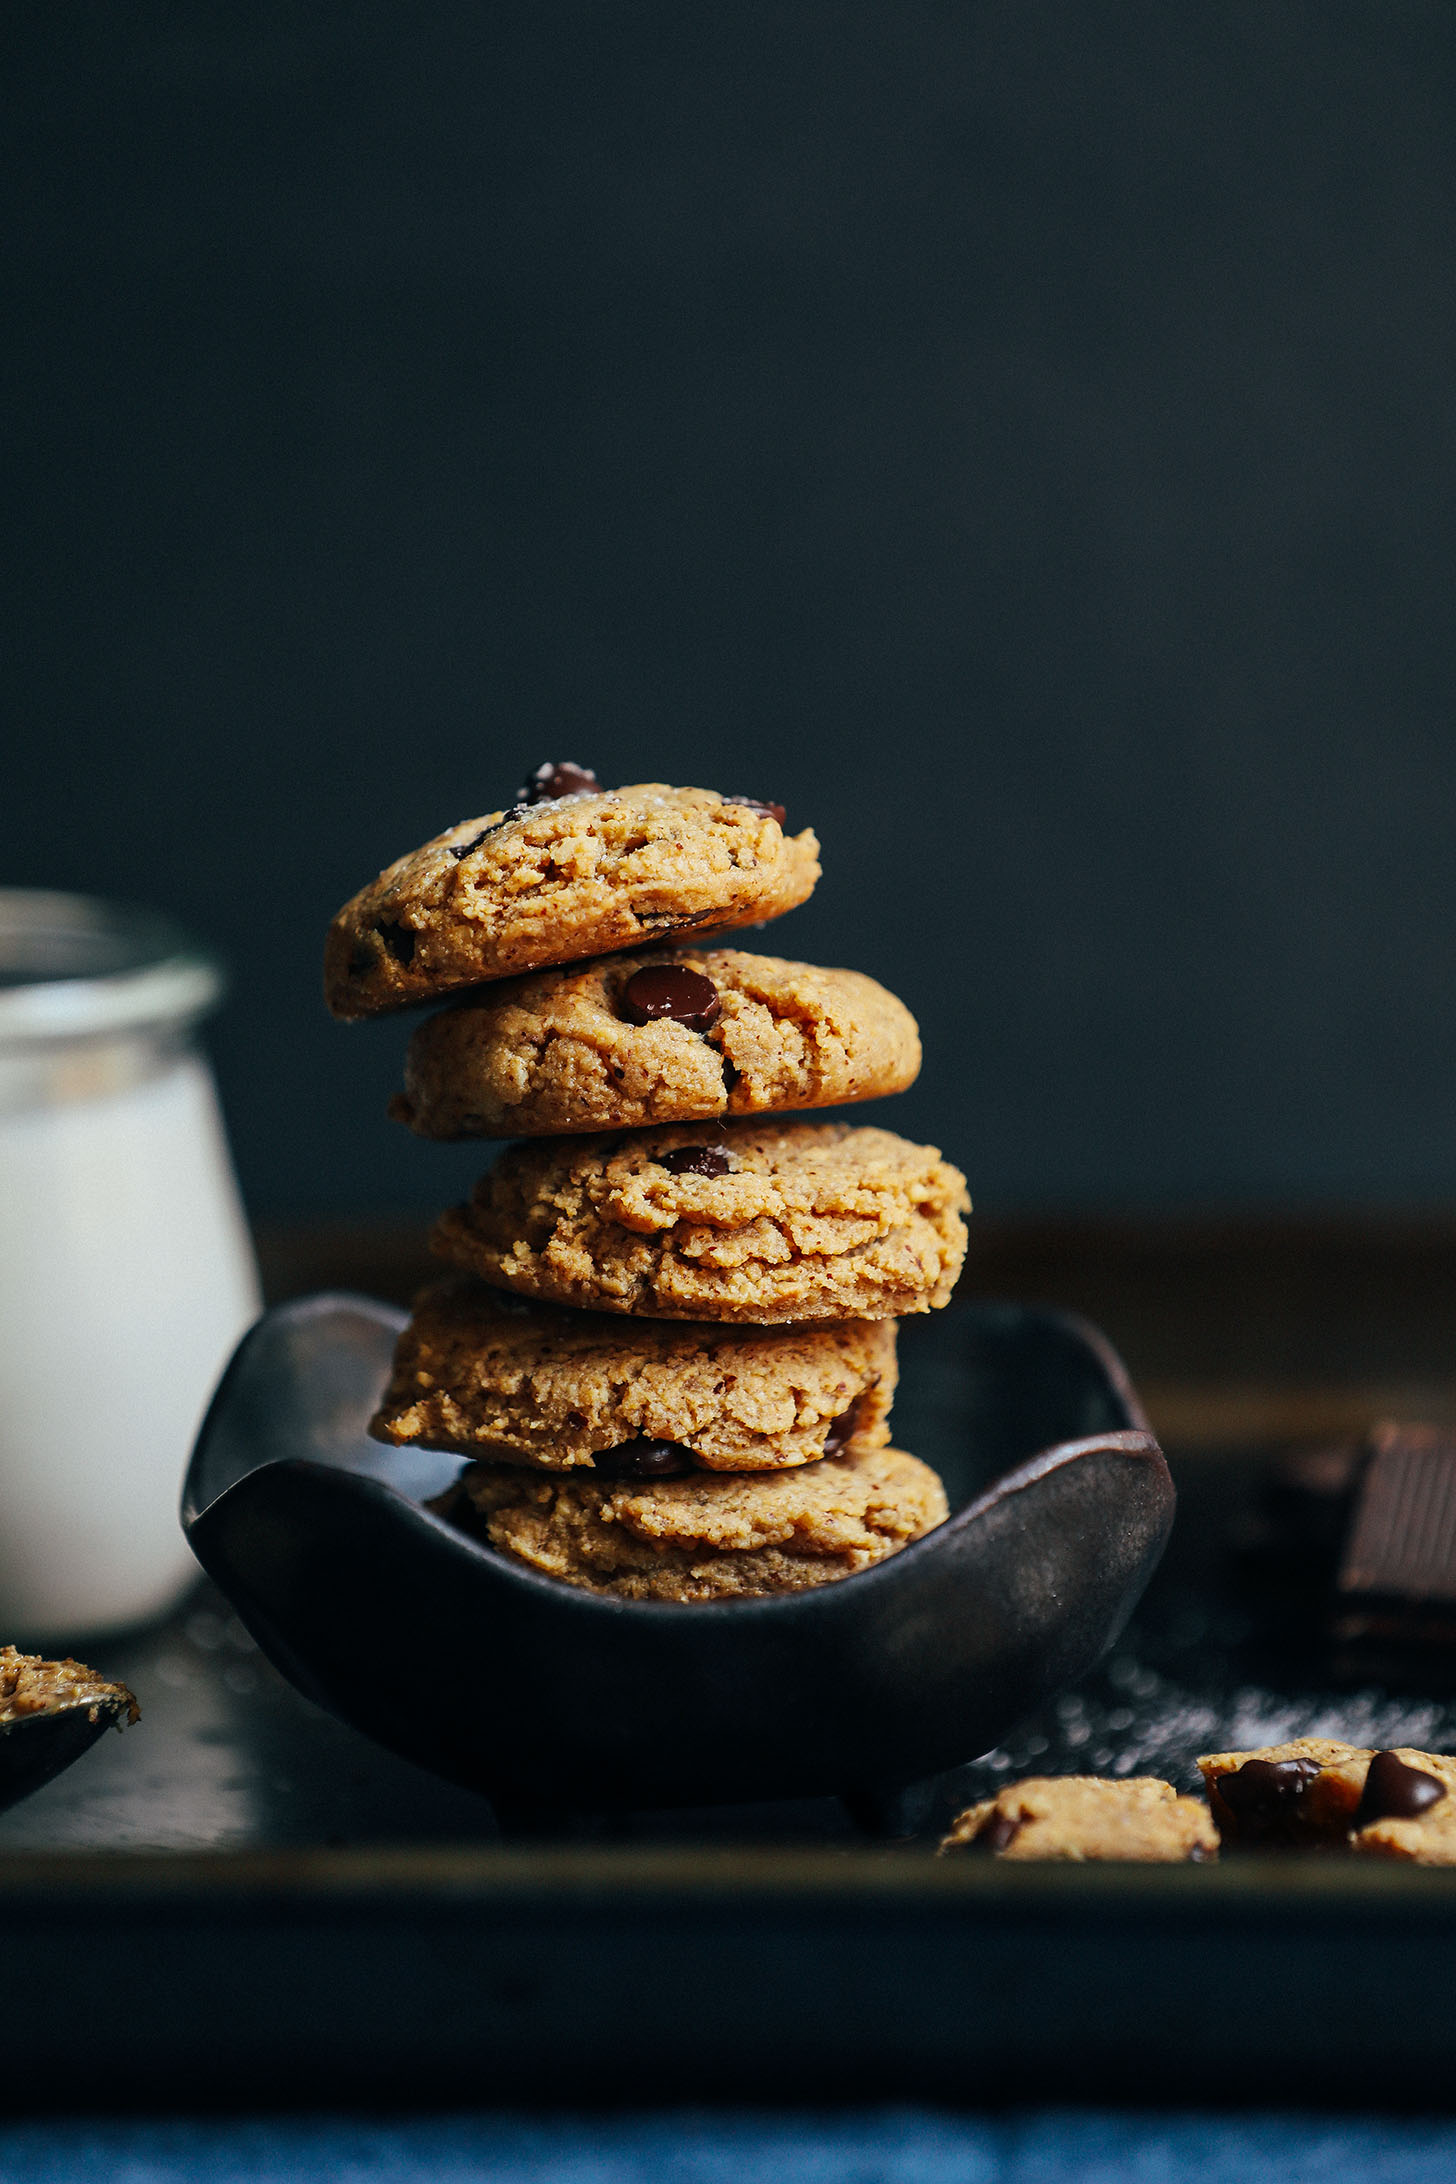 Stack of our amazing gluten-free low sugar Almond Butter Chocolate Chip Cookies